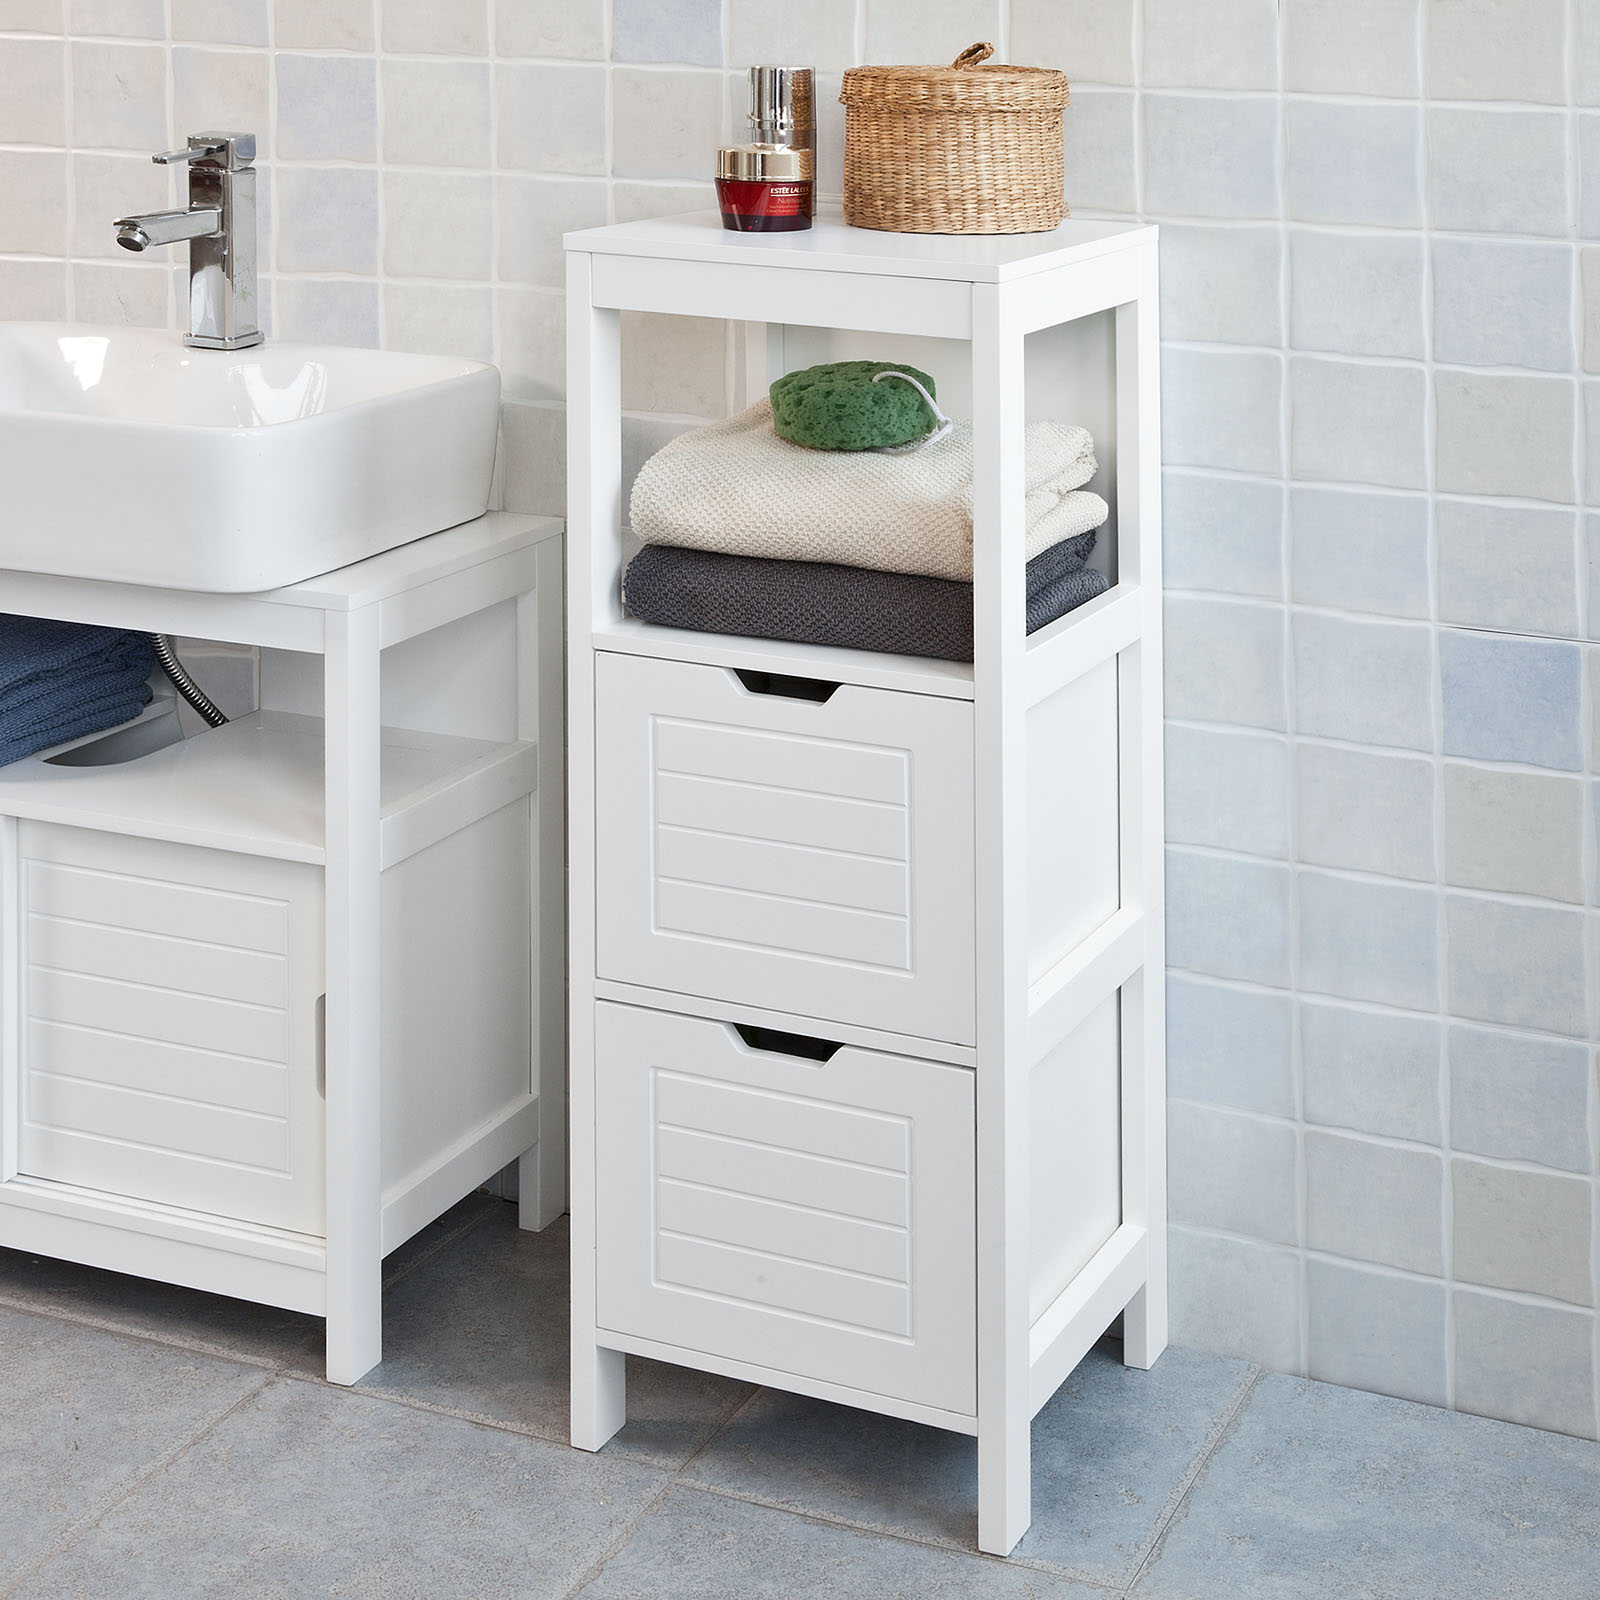 White Under Sink Bathroom Storage Cabinet haotian bathroom vanity set,white floor standing bathroom storage